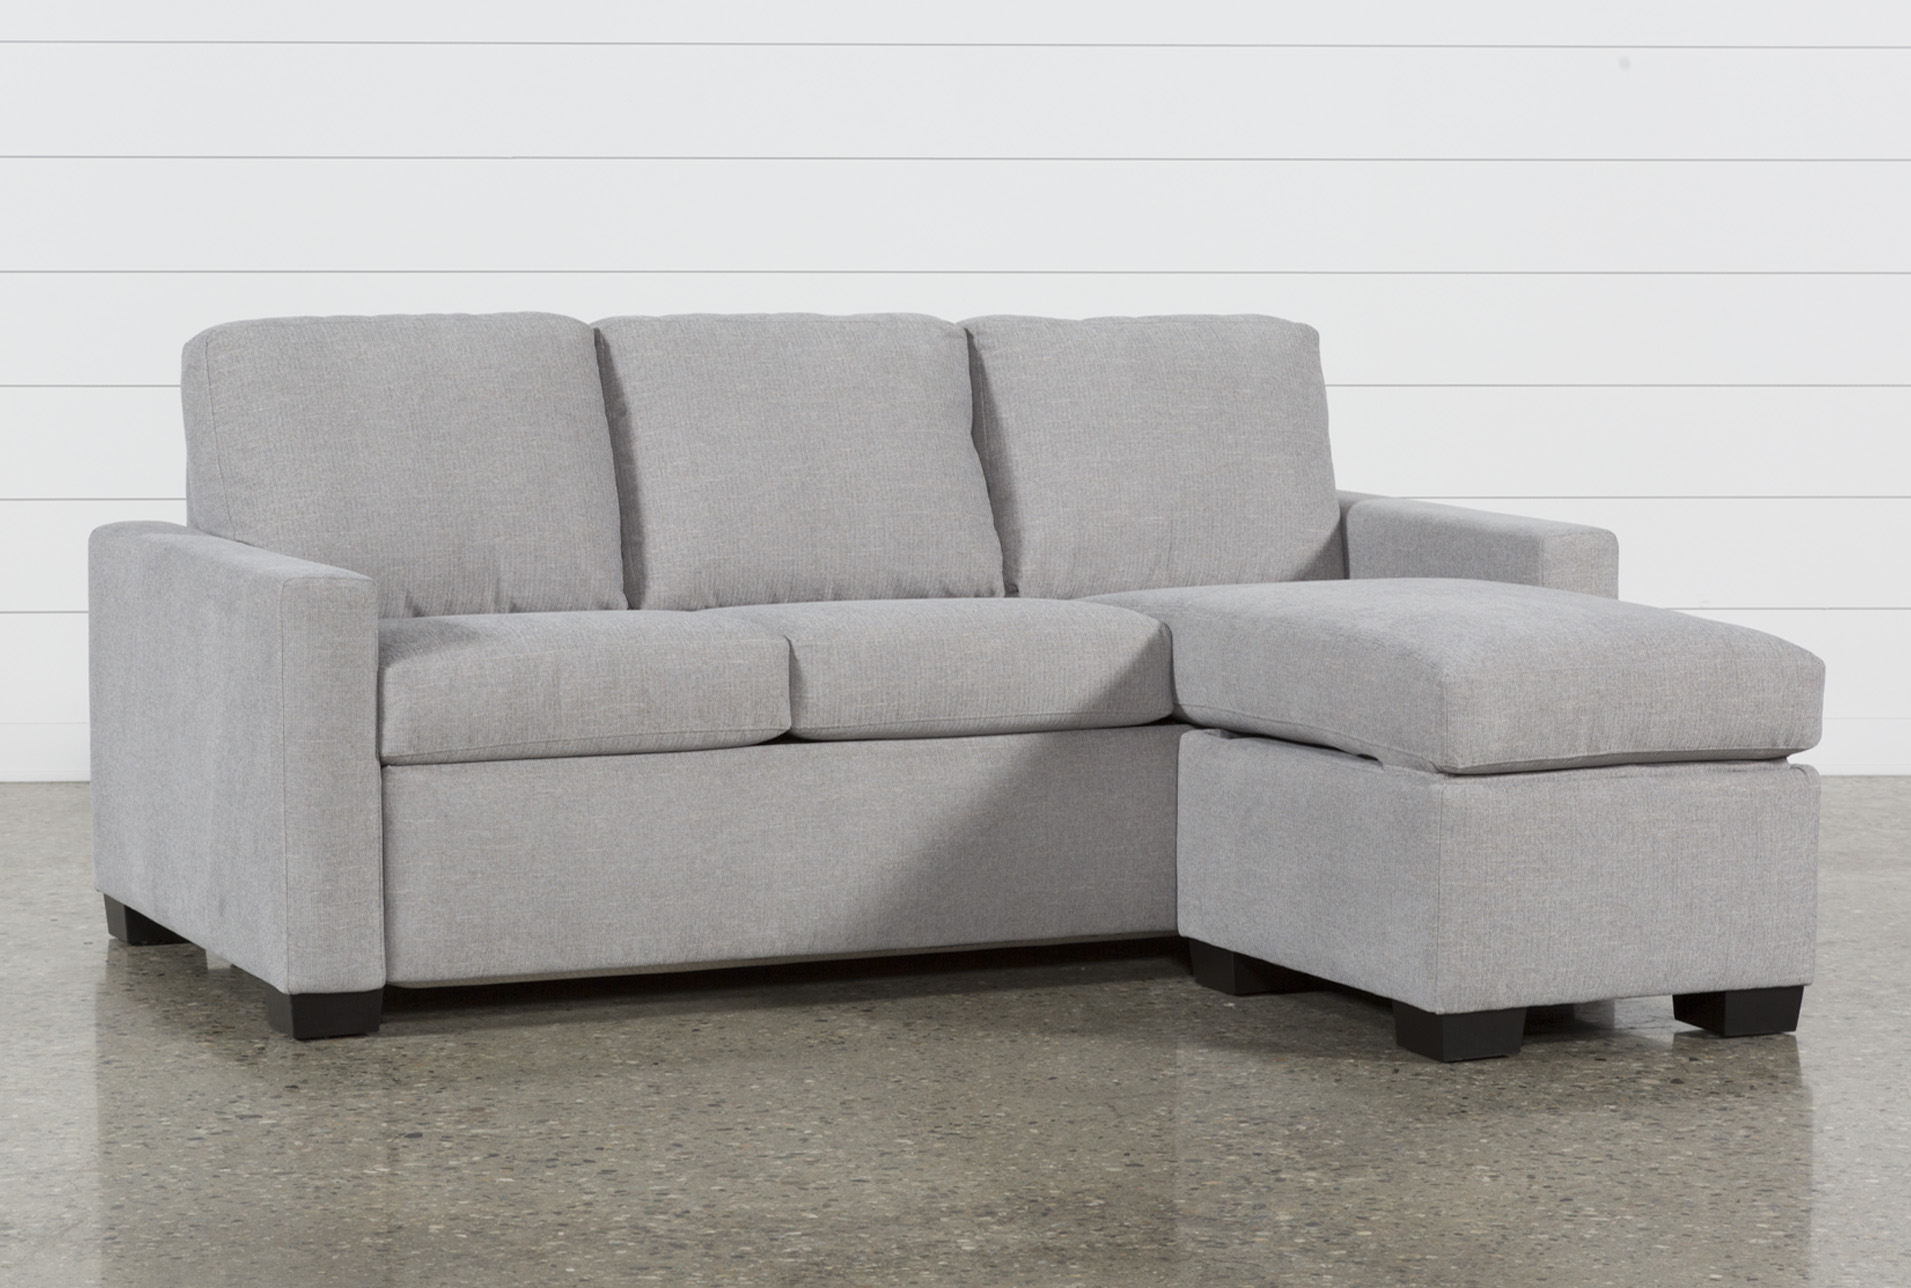 small space sofa beds sleeper sofas free assembly with delivery rh livingspaces com IKEA Sleeper Sofa IKEA Sleeper Sofa